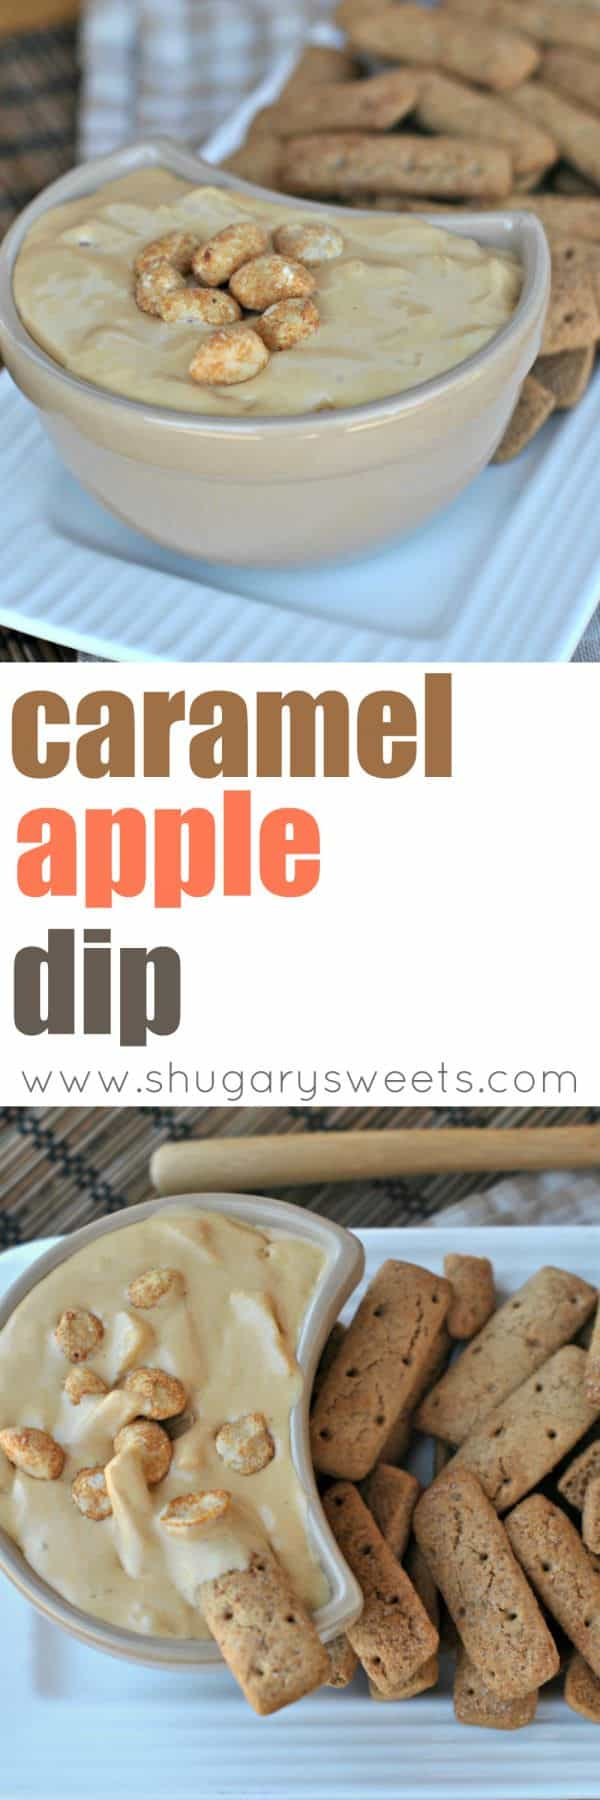 Grab your crackers, apples or spoons! This creamy Caramel Apple Dip is outrageously delicious!